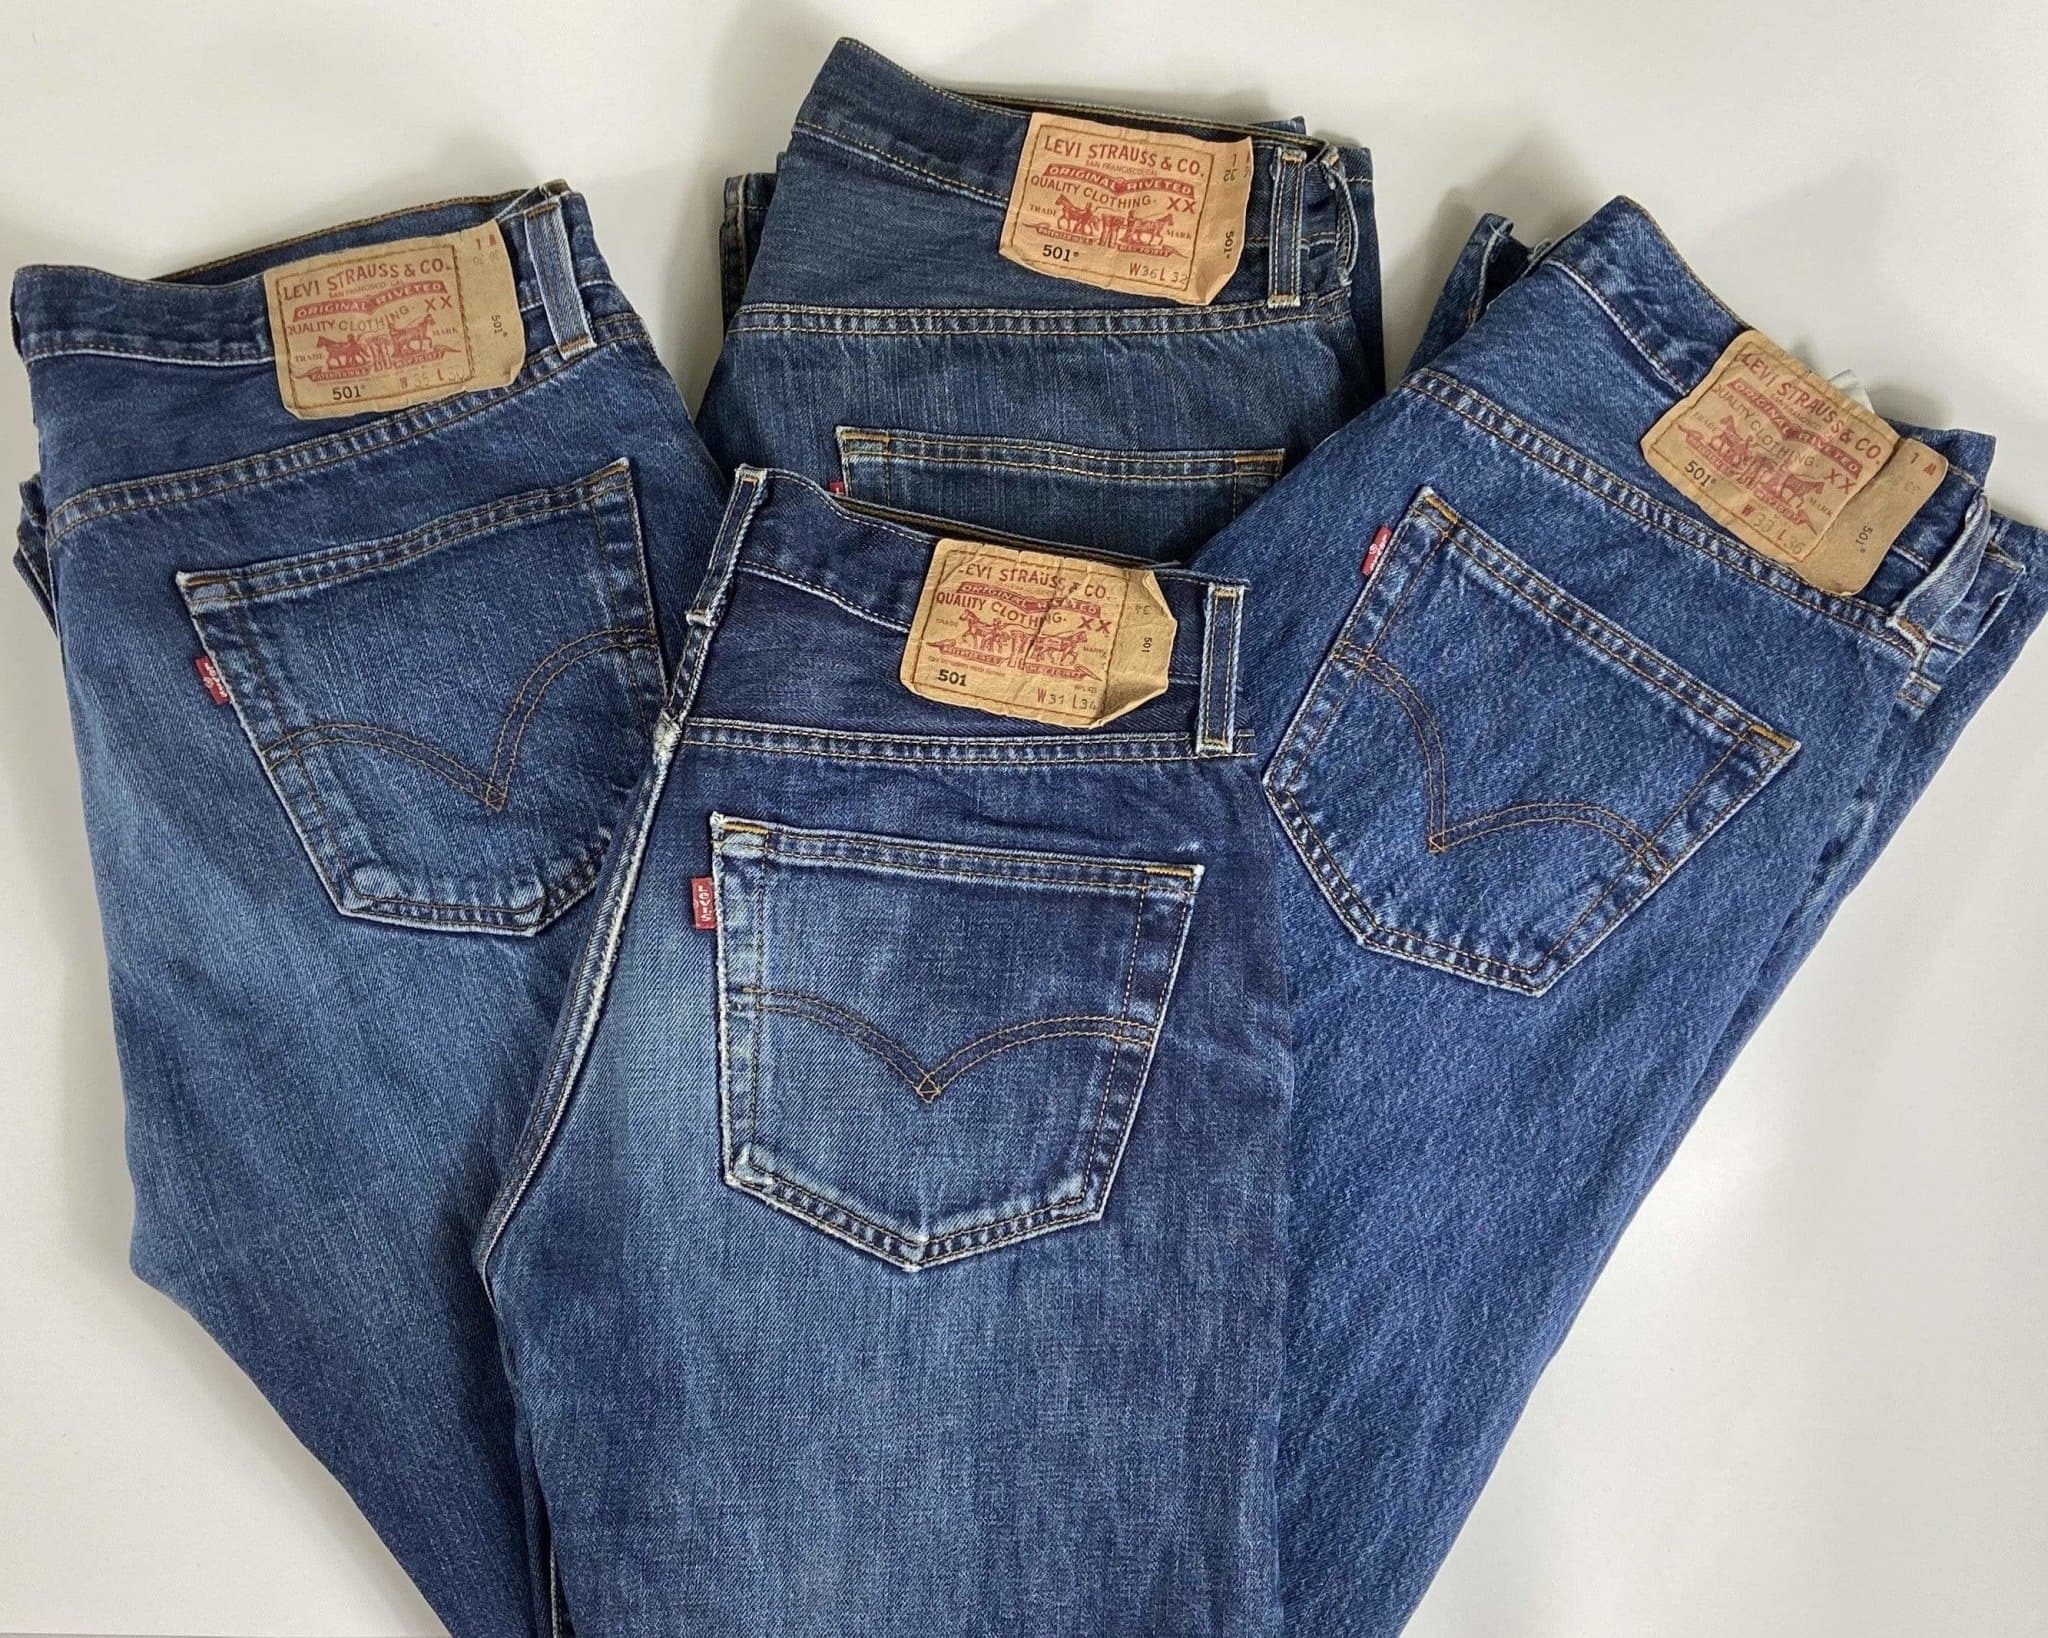 Vintage Levi's Classic 501 Jeans W34 L32 (LVB2) - Discounted Deals UK